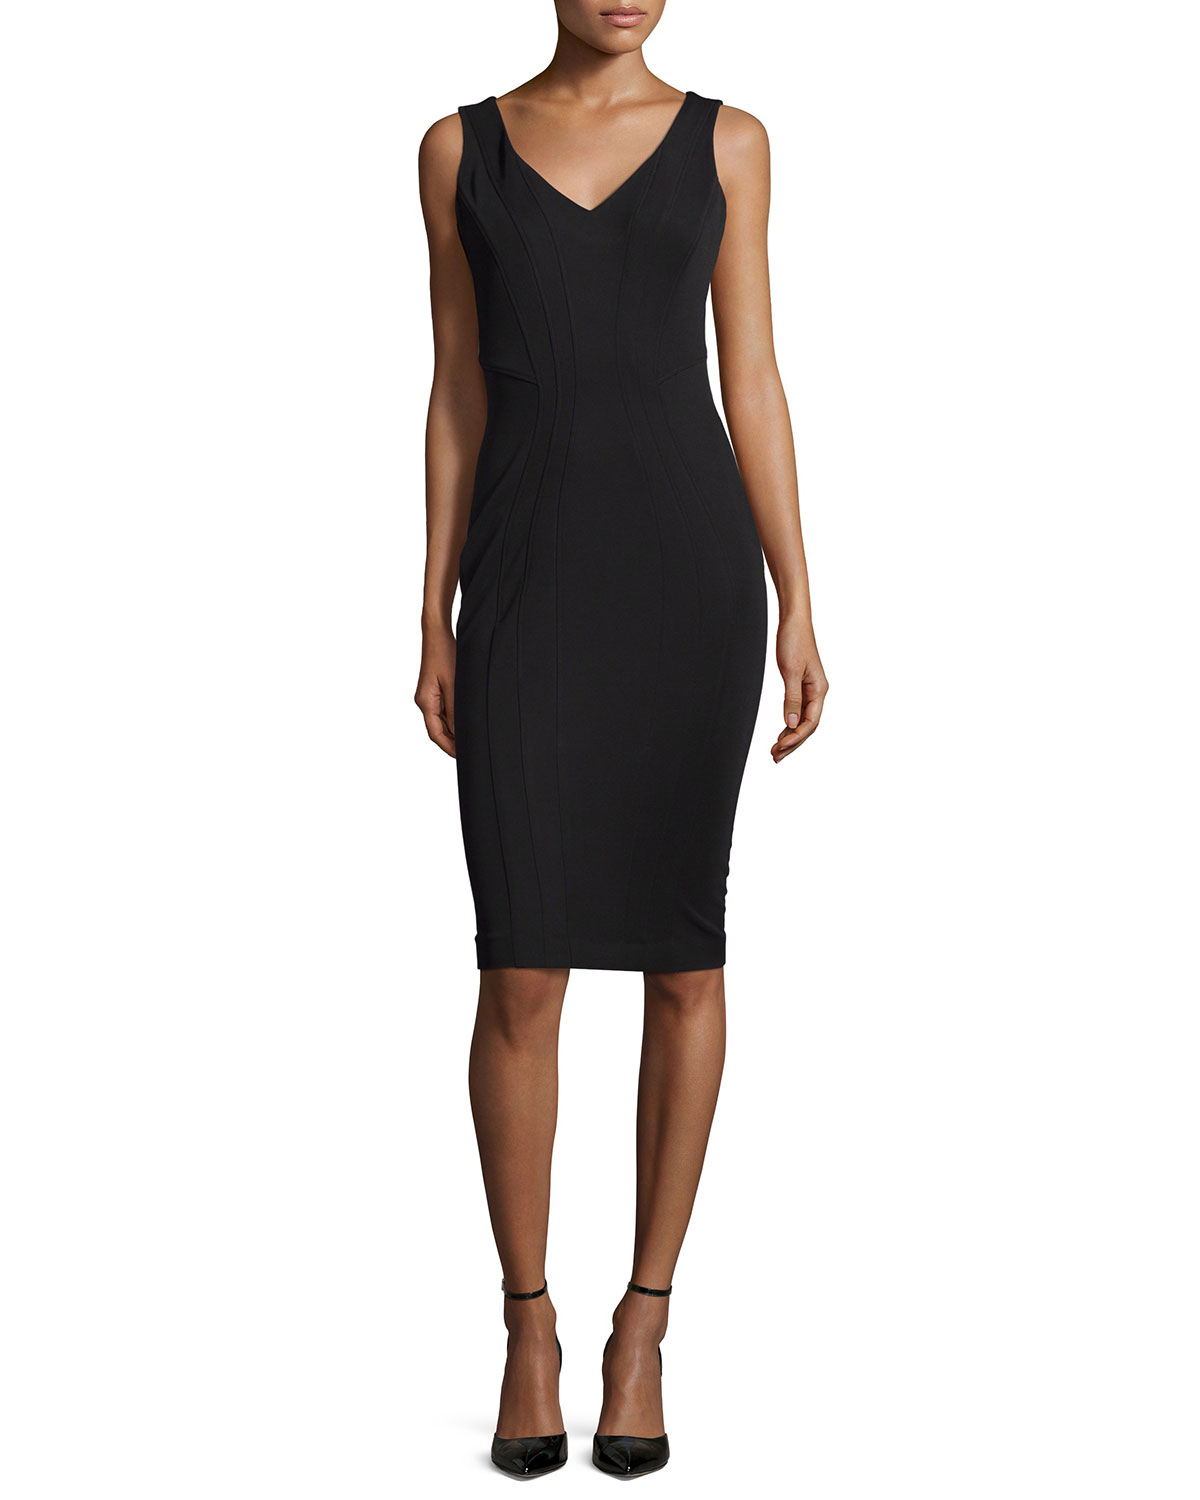 Zac Posen Cocktail Dresses 105